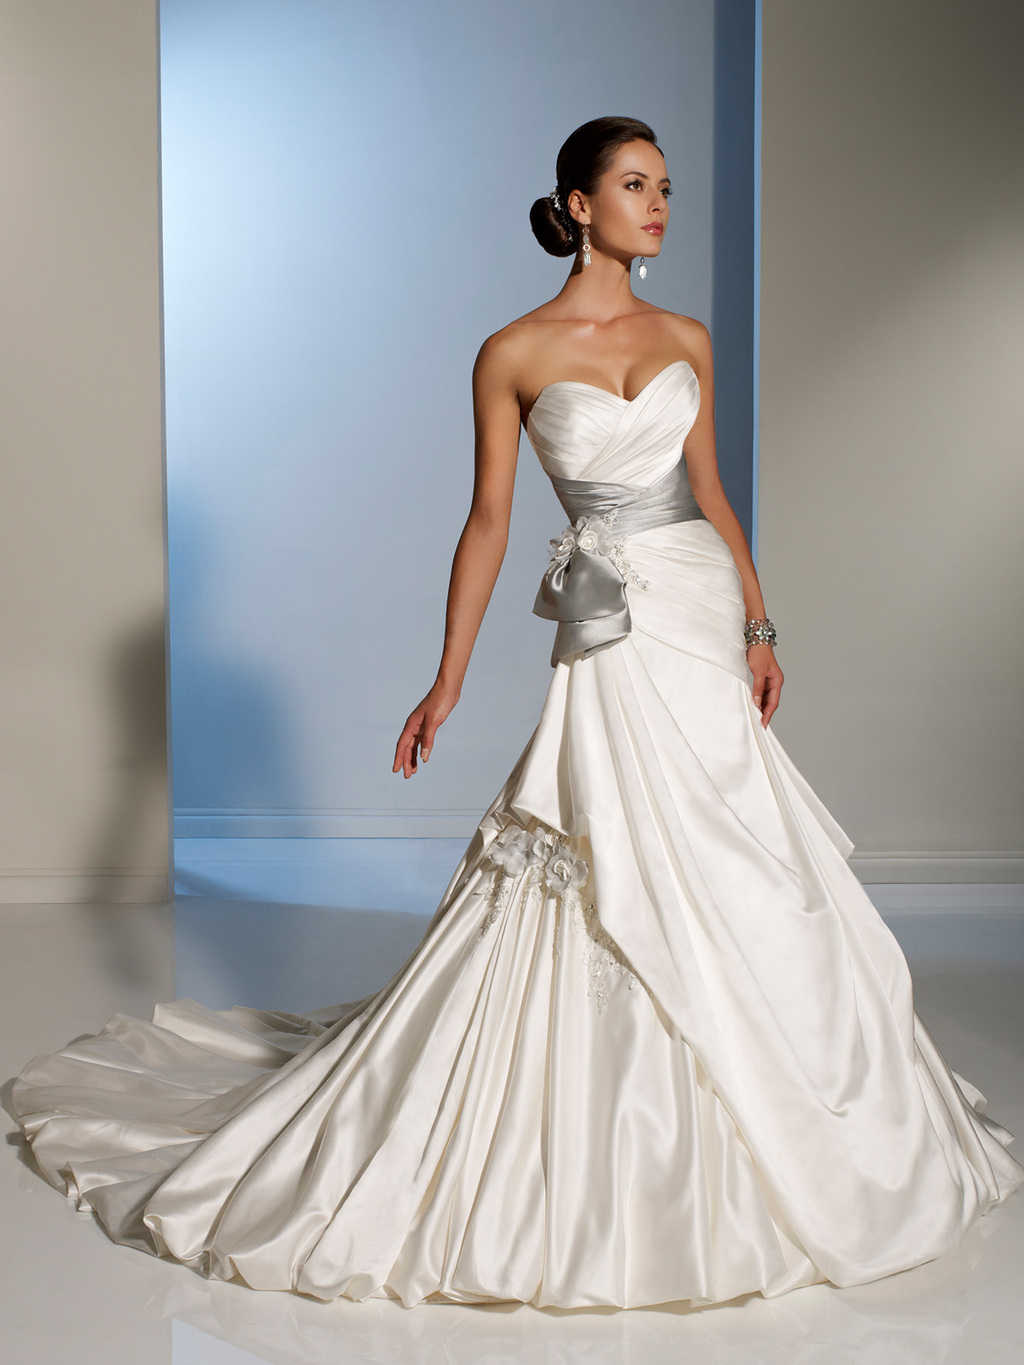 2012 Wedding Dress Sophia Tolli For Mon Cheri Bridal Gowns Y11201